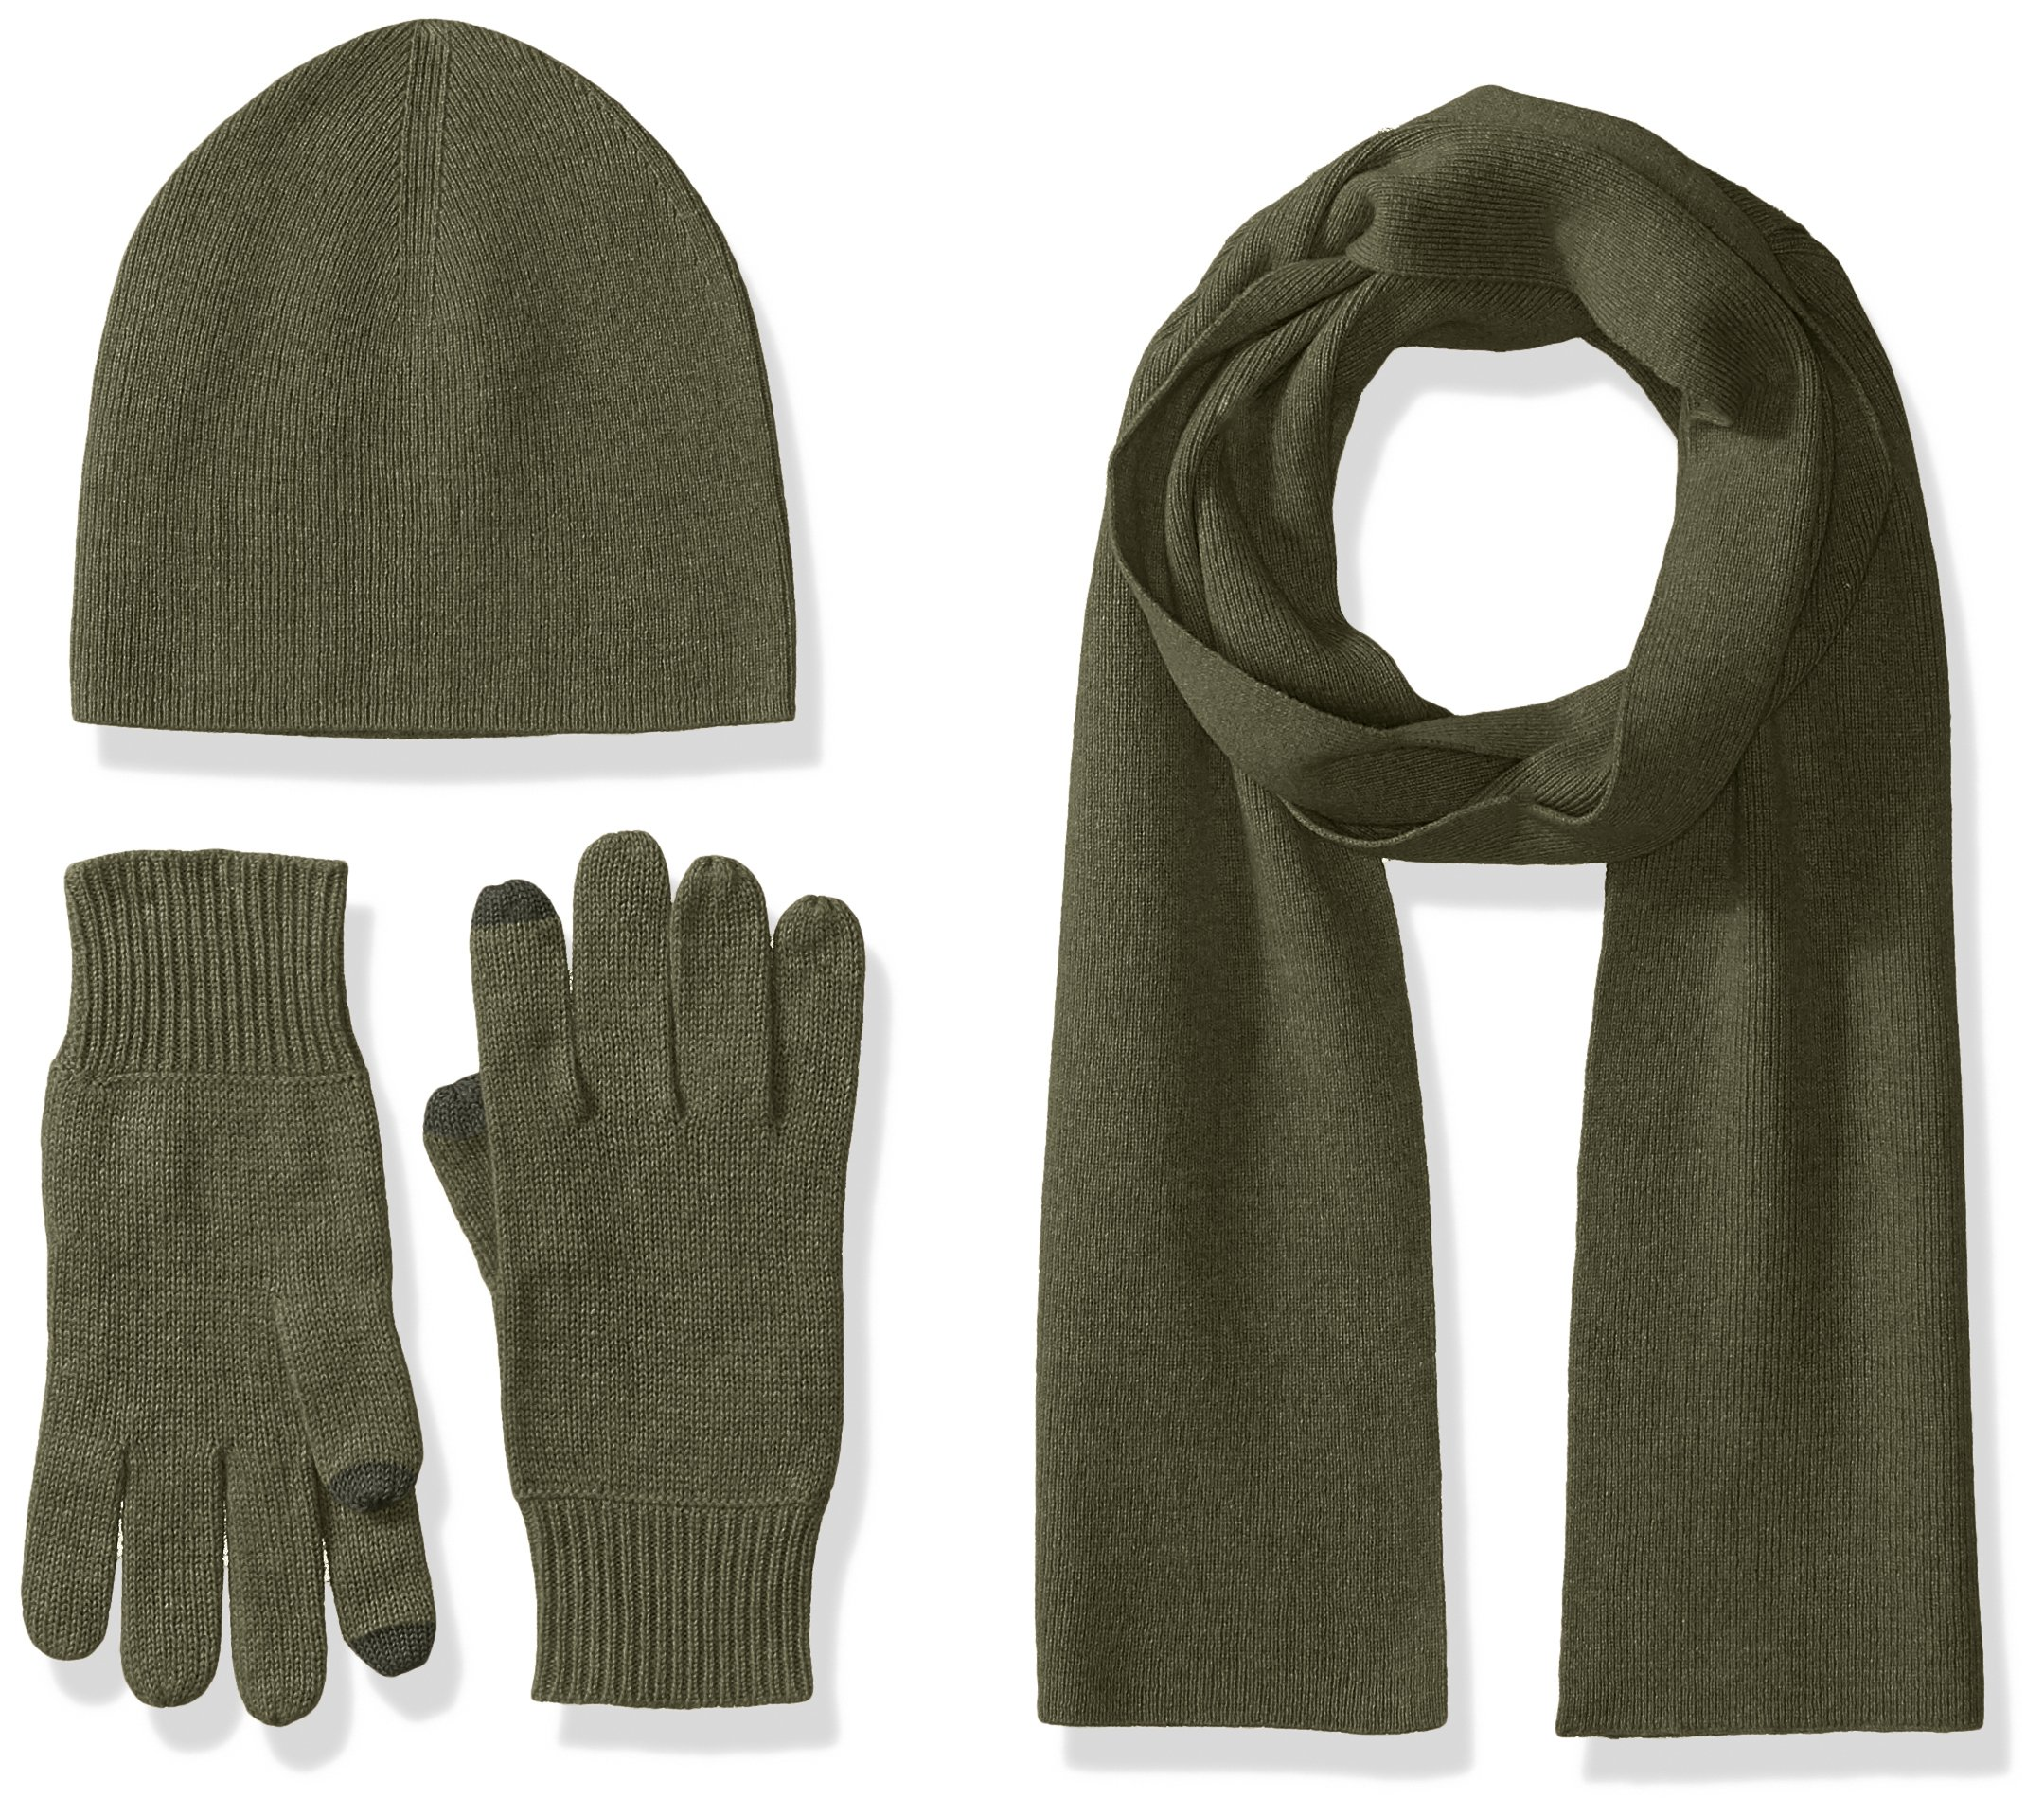 Williams Cashmere Men's 3pc Value Gift Box Set - Men's Texting Gloves, Hat, & Scarf, new olive, One Size